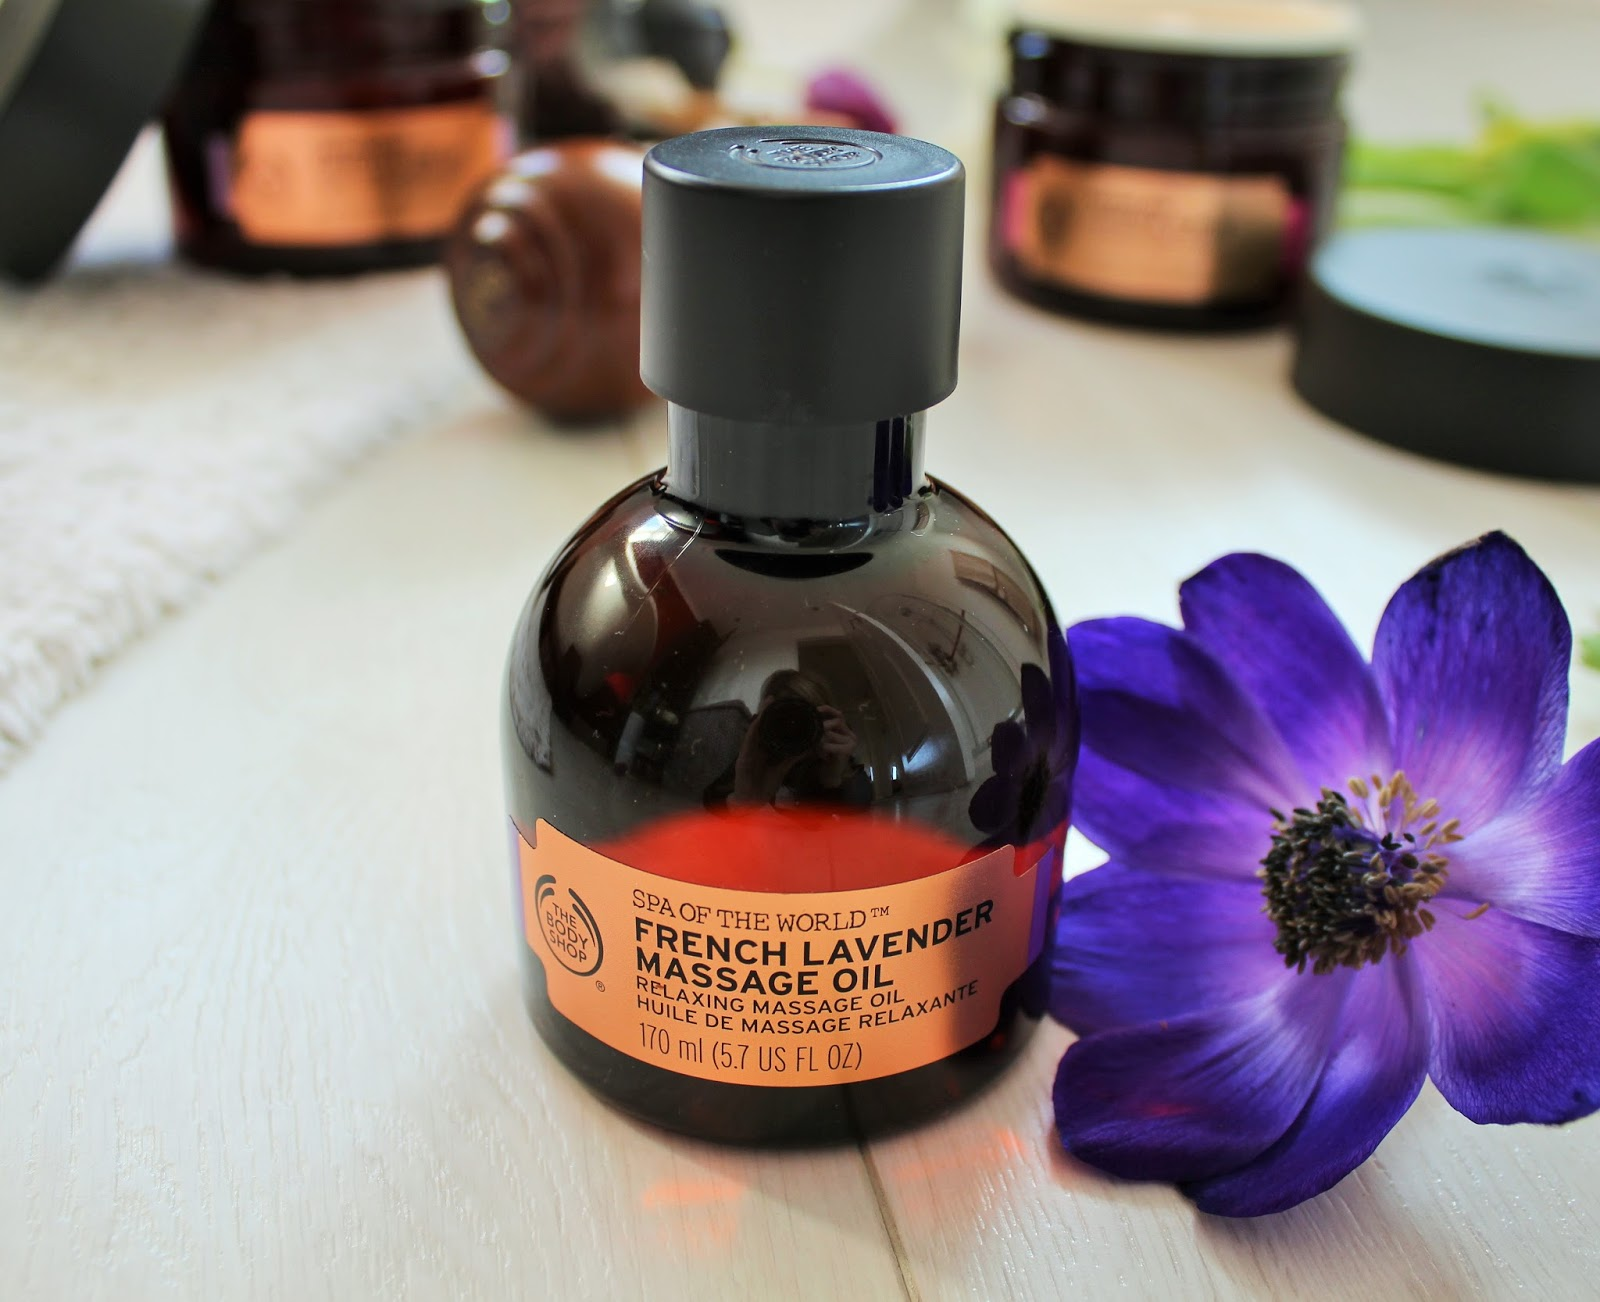 The Body Shop Spa of the World Range - 6 - French Lavender Massage Oil